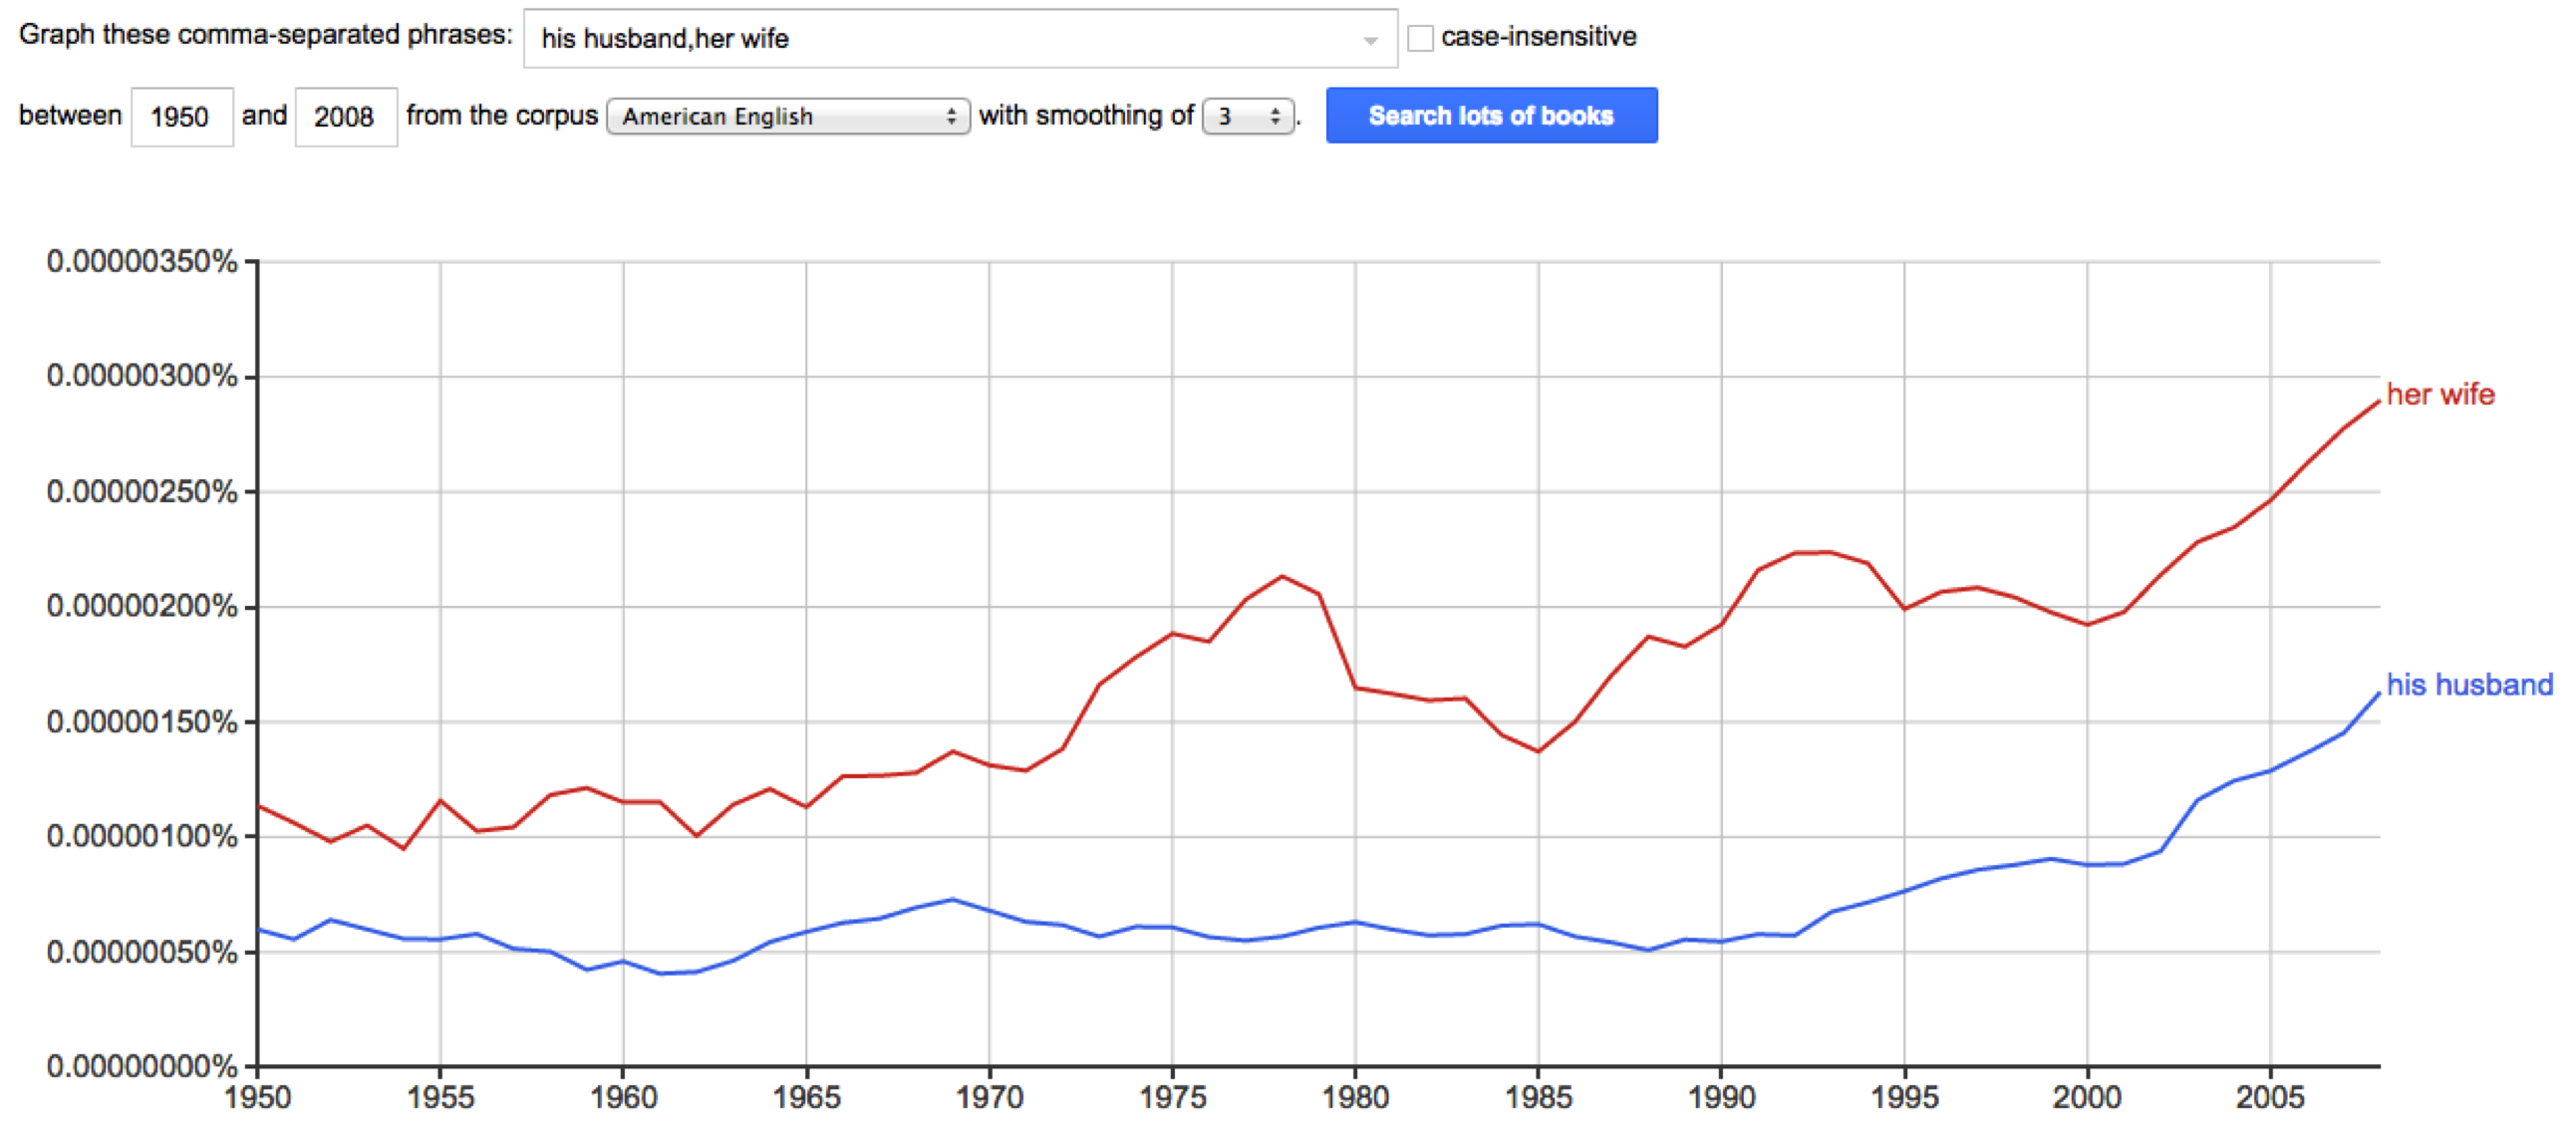 google ngram, his husband, her wife